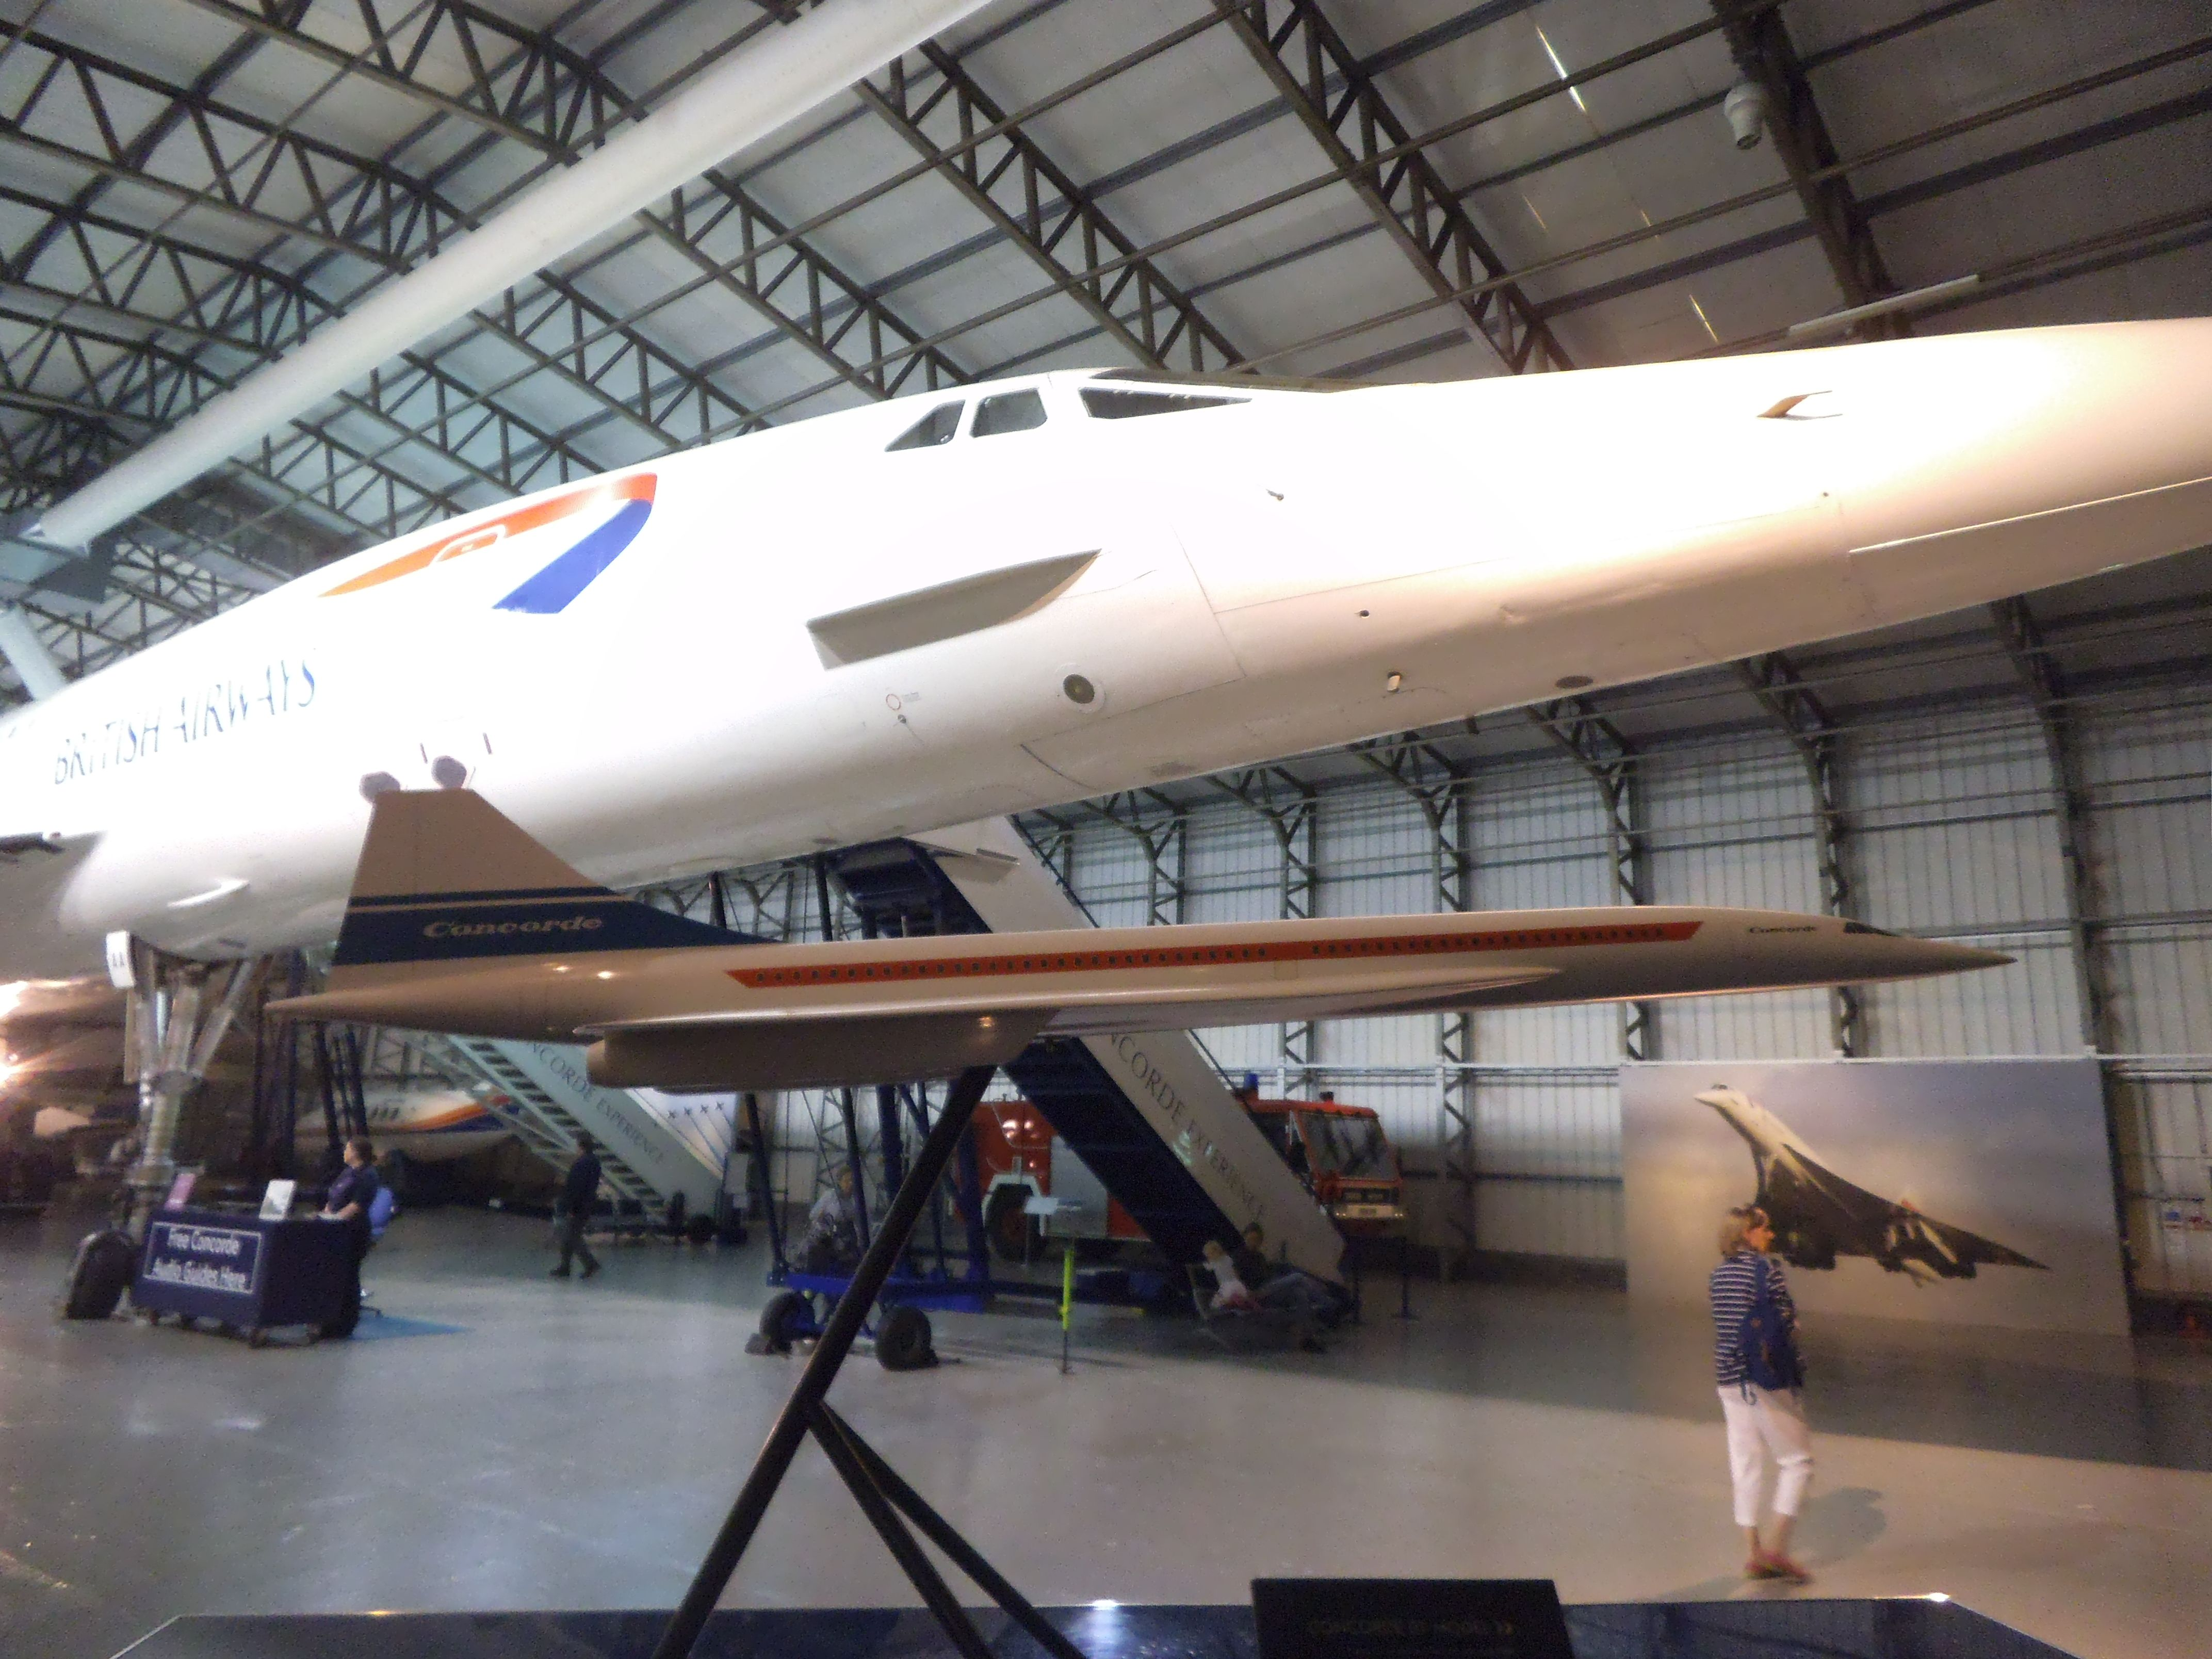 BAC/Sud Aviation Concorde G-BOAA